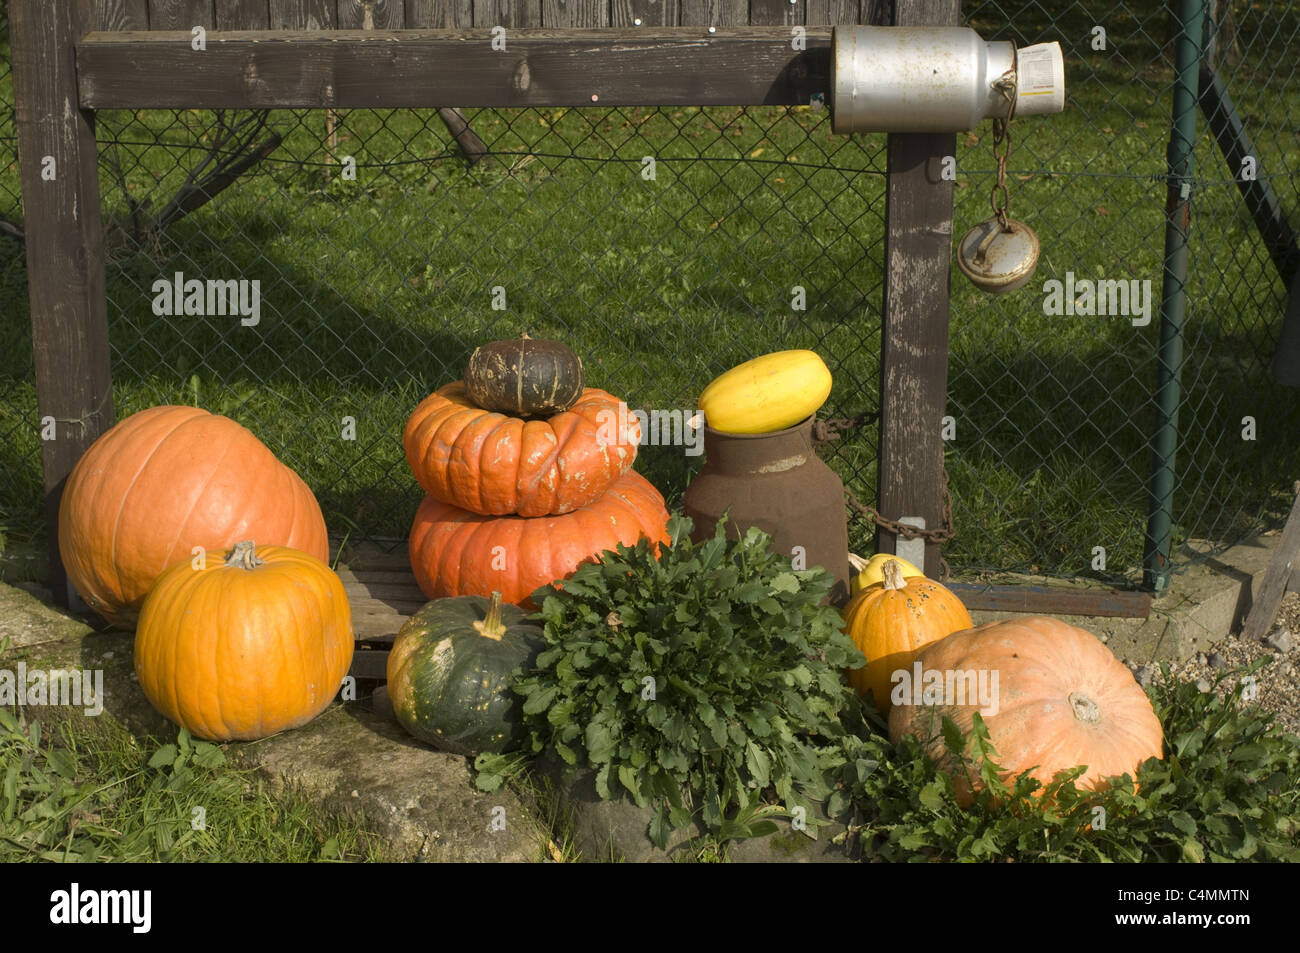 different pumpkins - Stock Image